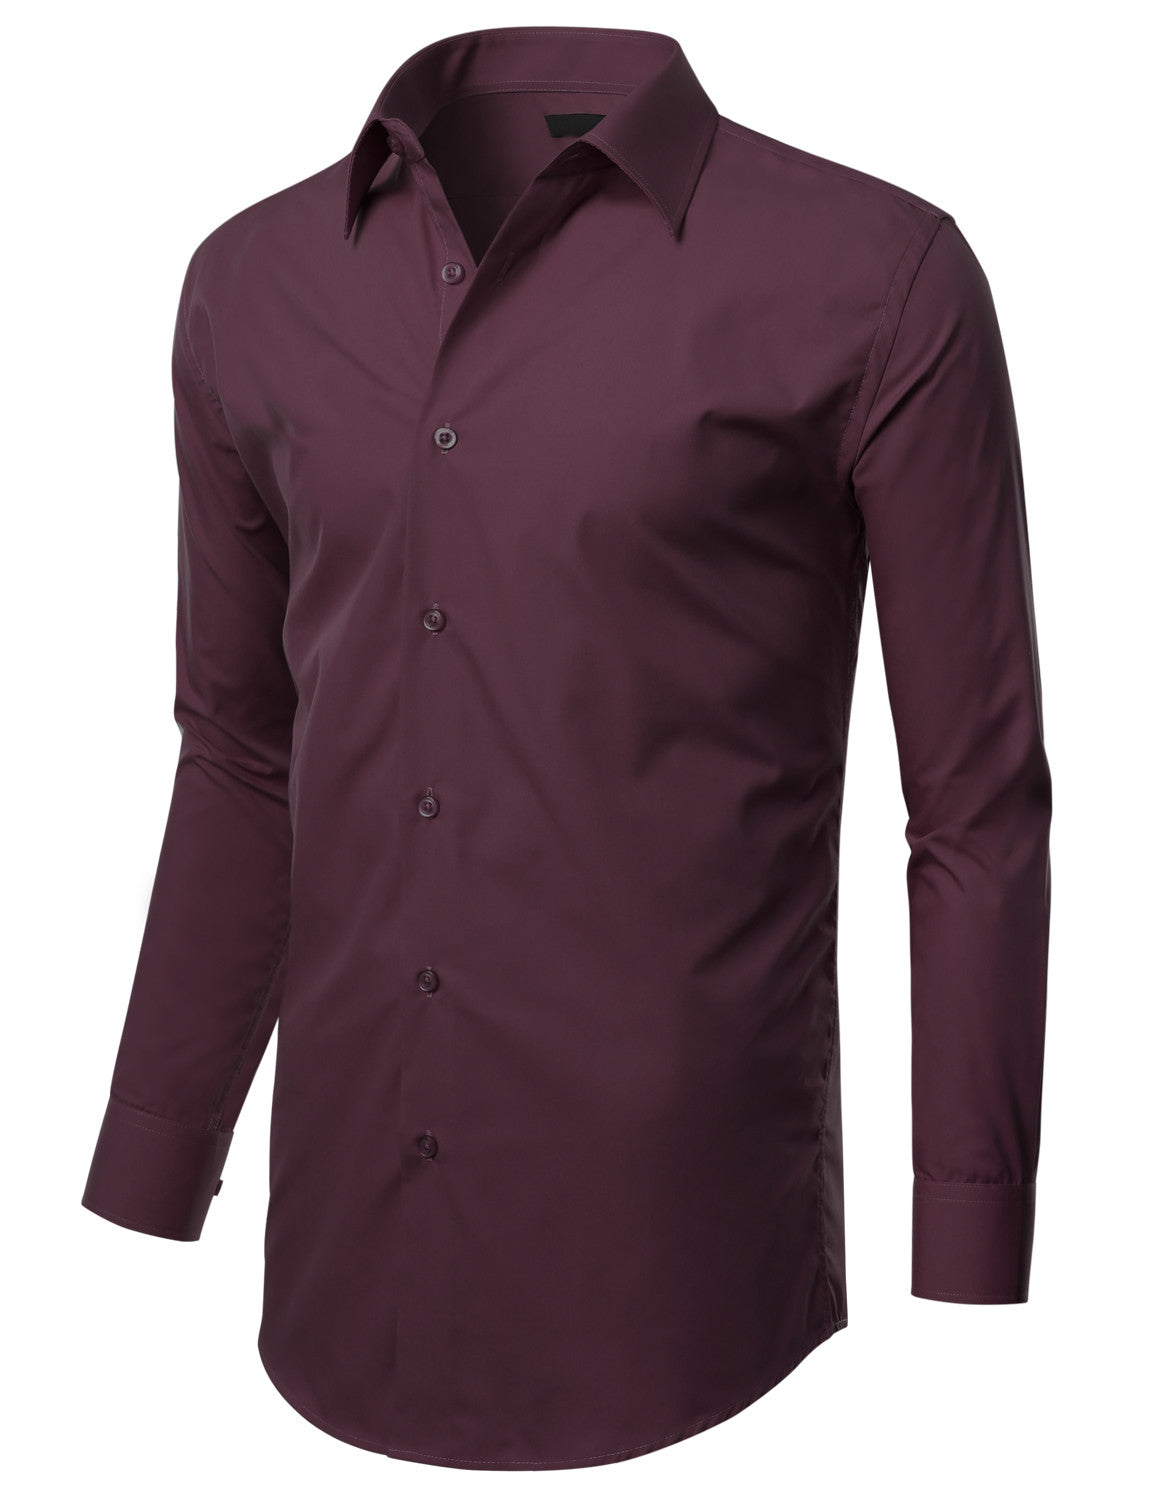 TC617PLUM Plum Slim Fit Dress Shirt w/ Reversible Cuff (Big & Tall Available)- MONDAYSUIT